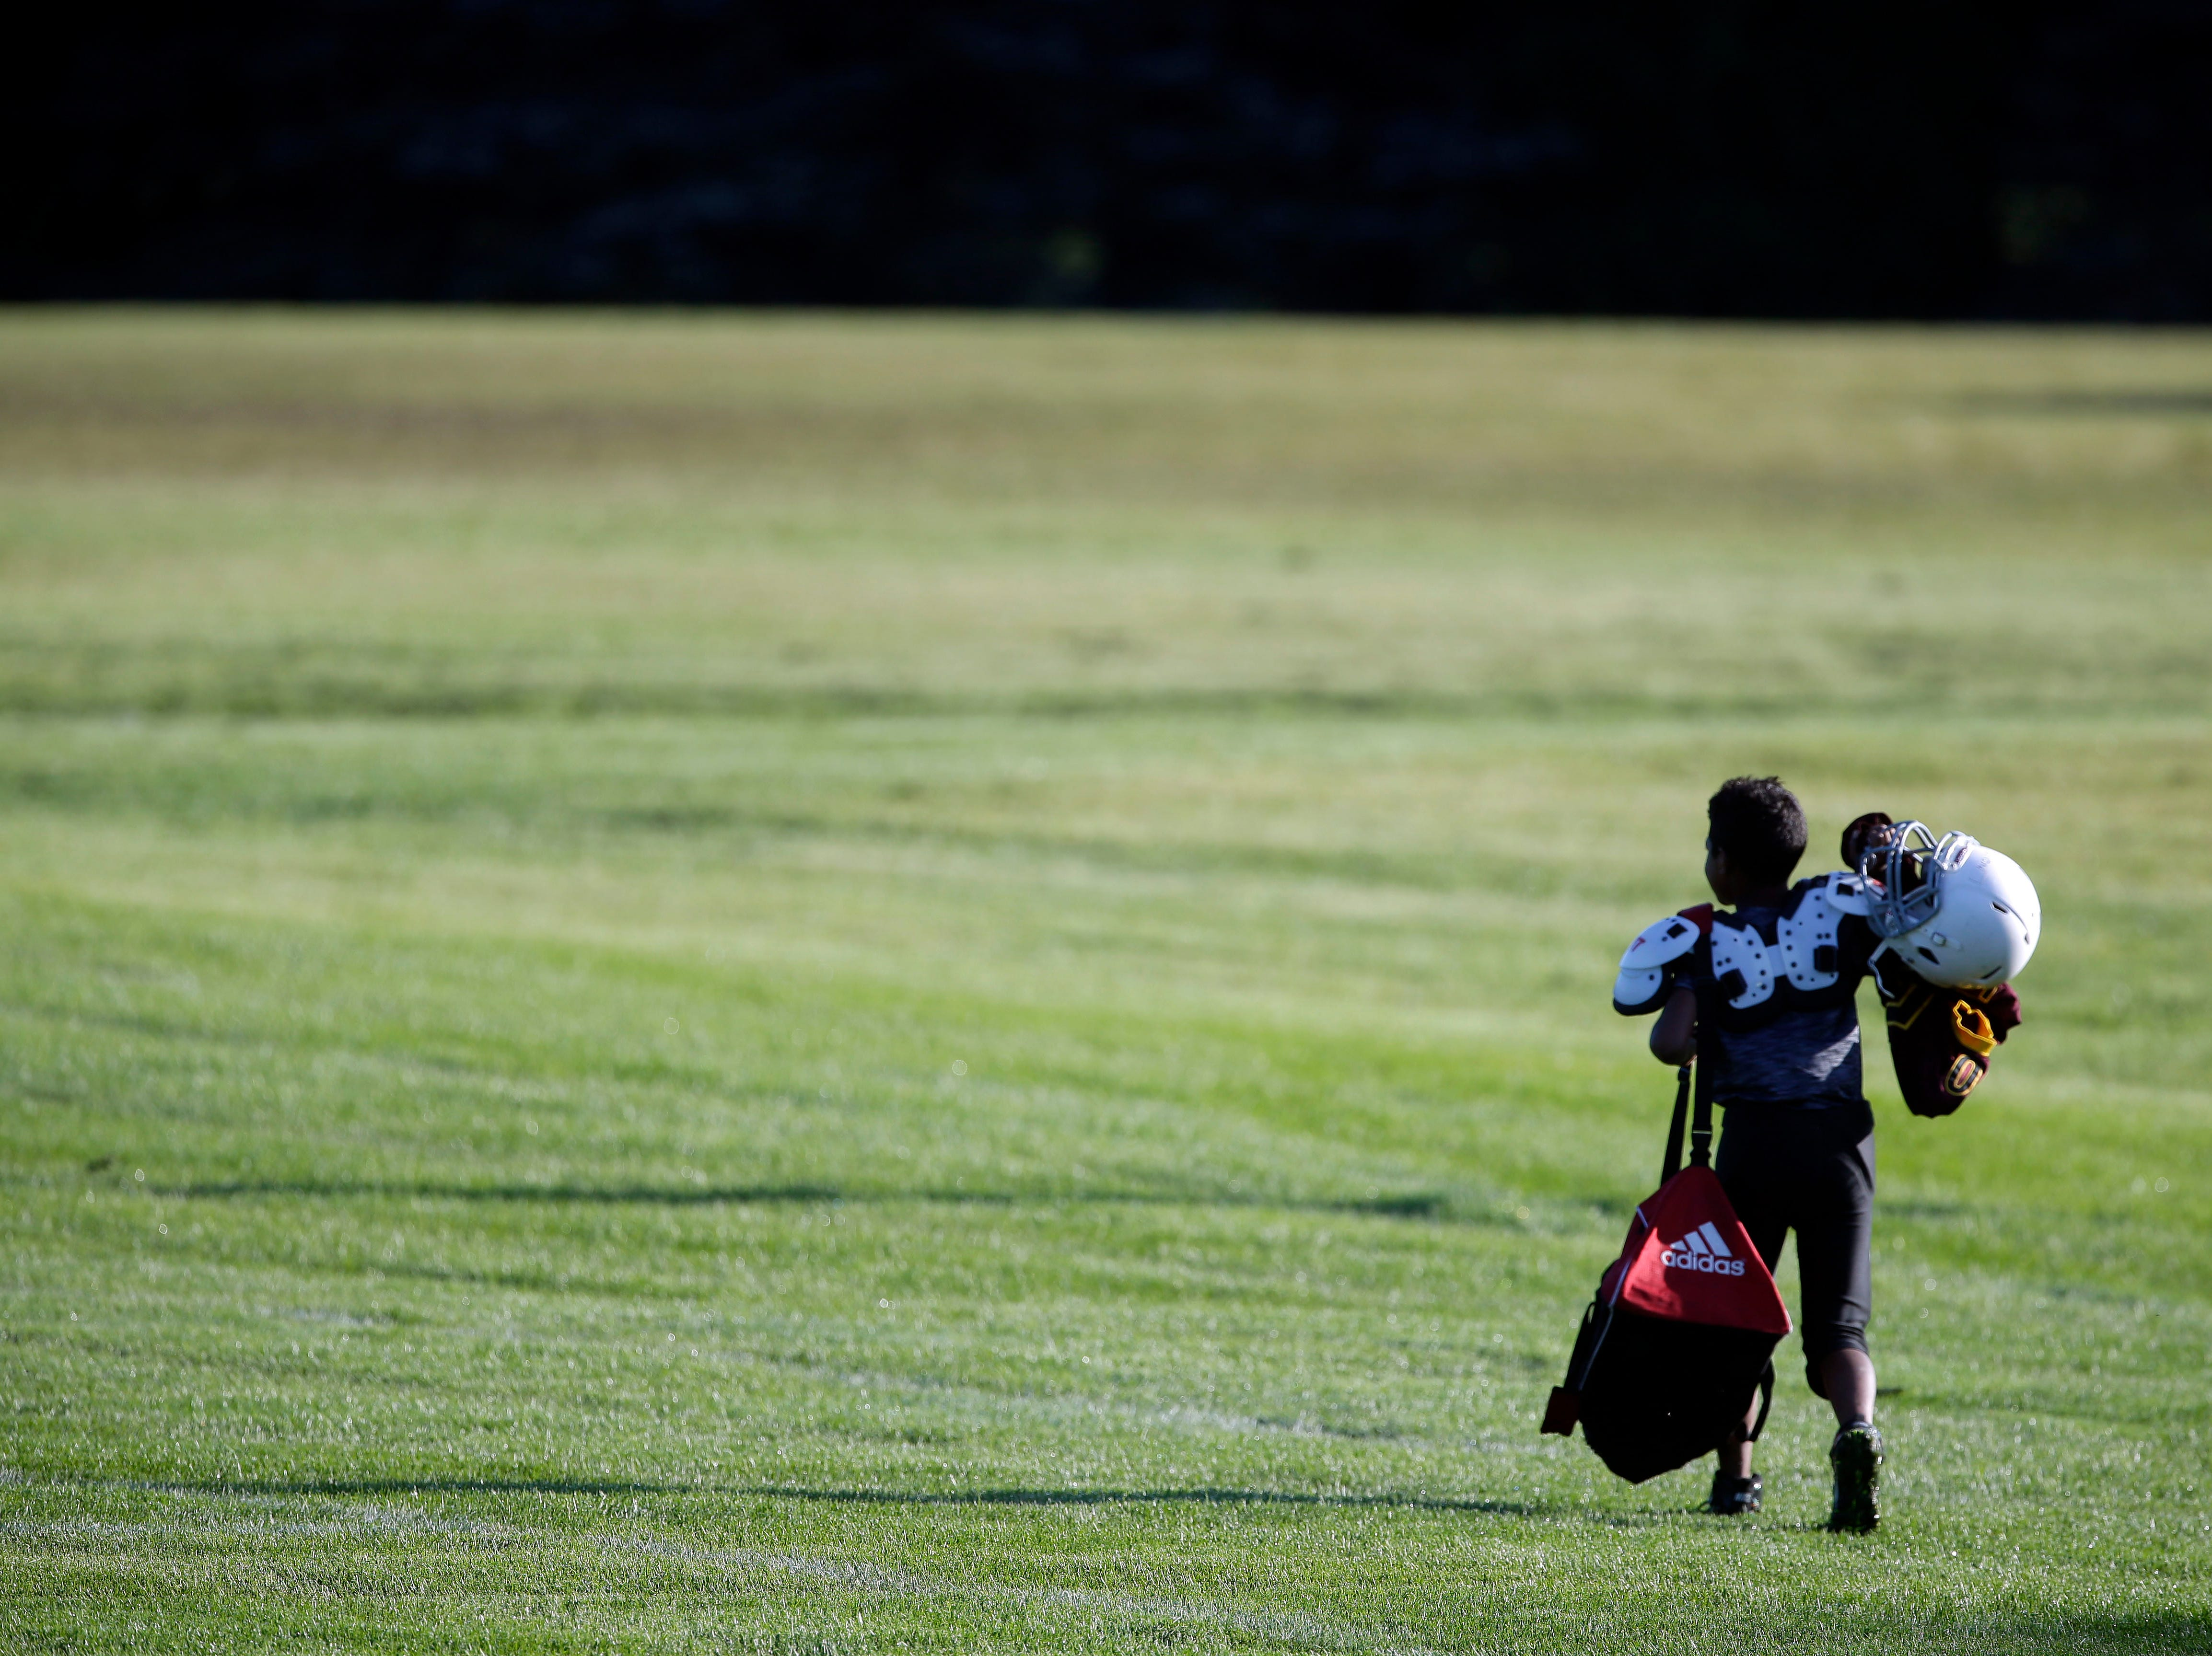 A player joins his team to warm-up as Fox Valley Pop Warner Football opens the season Saturday, September 8, 2018, at Plamann Park in Grand Chute, Wis.